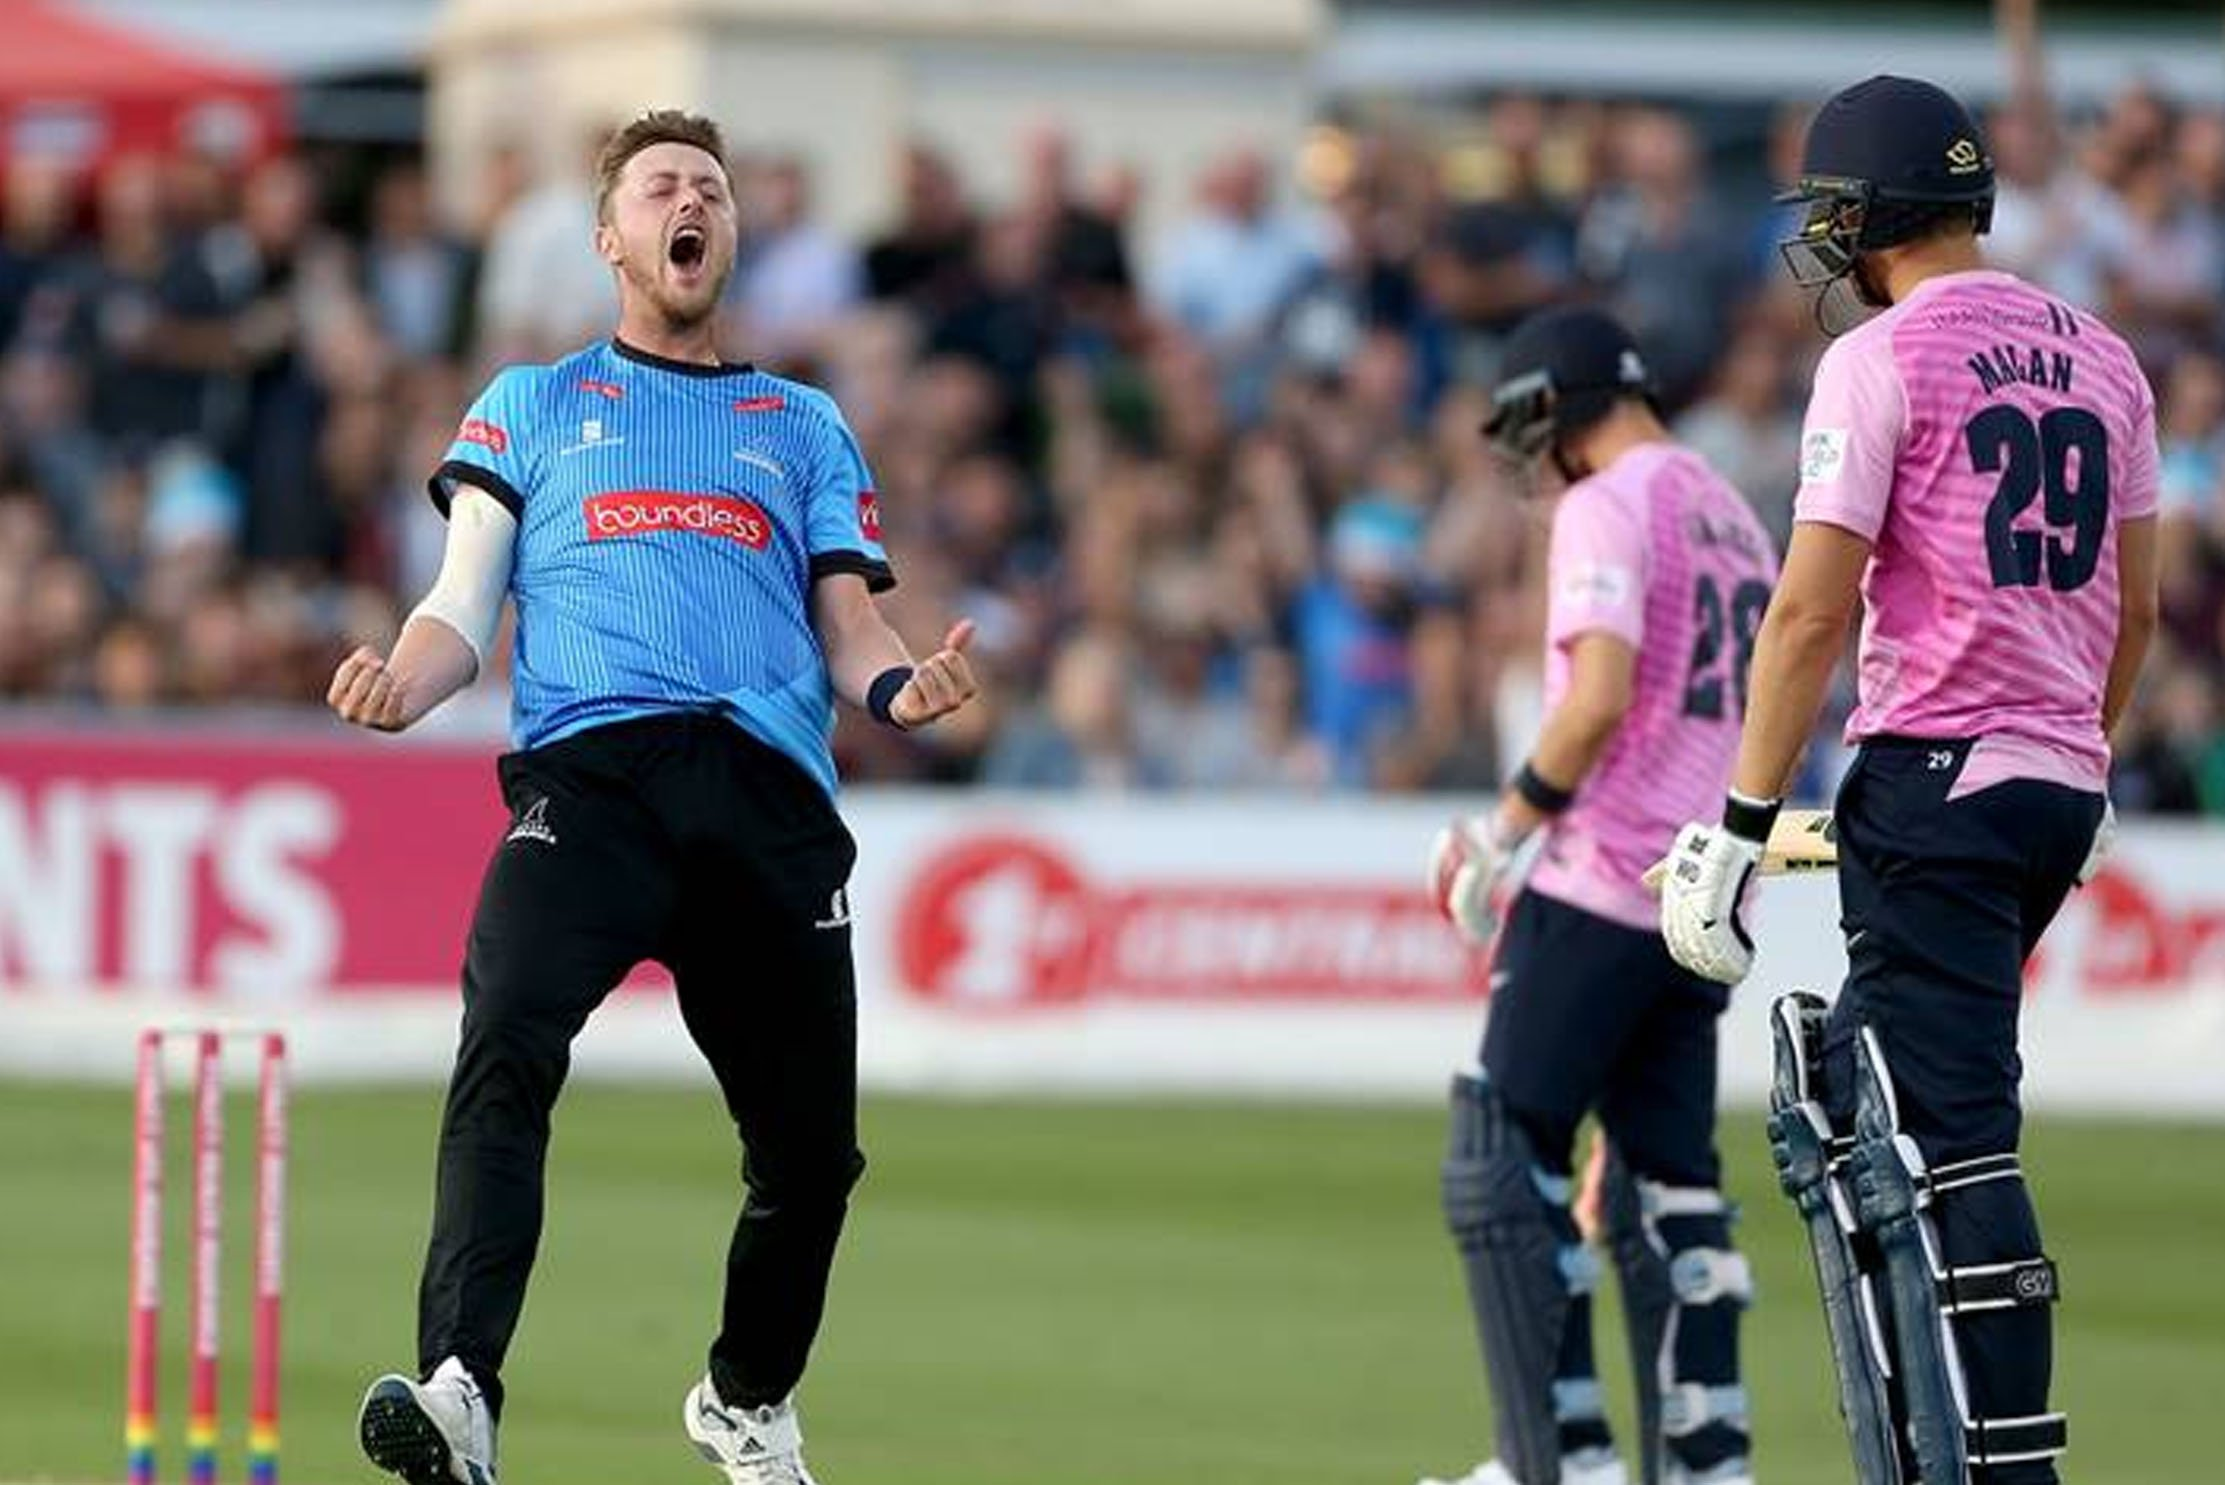 Fast bowler Ollie Robinson has signed a three-year contract extension with Sussex Cricket